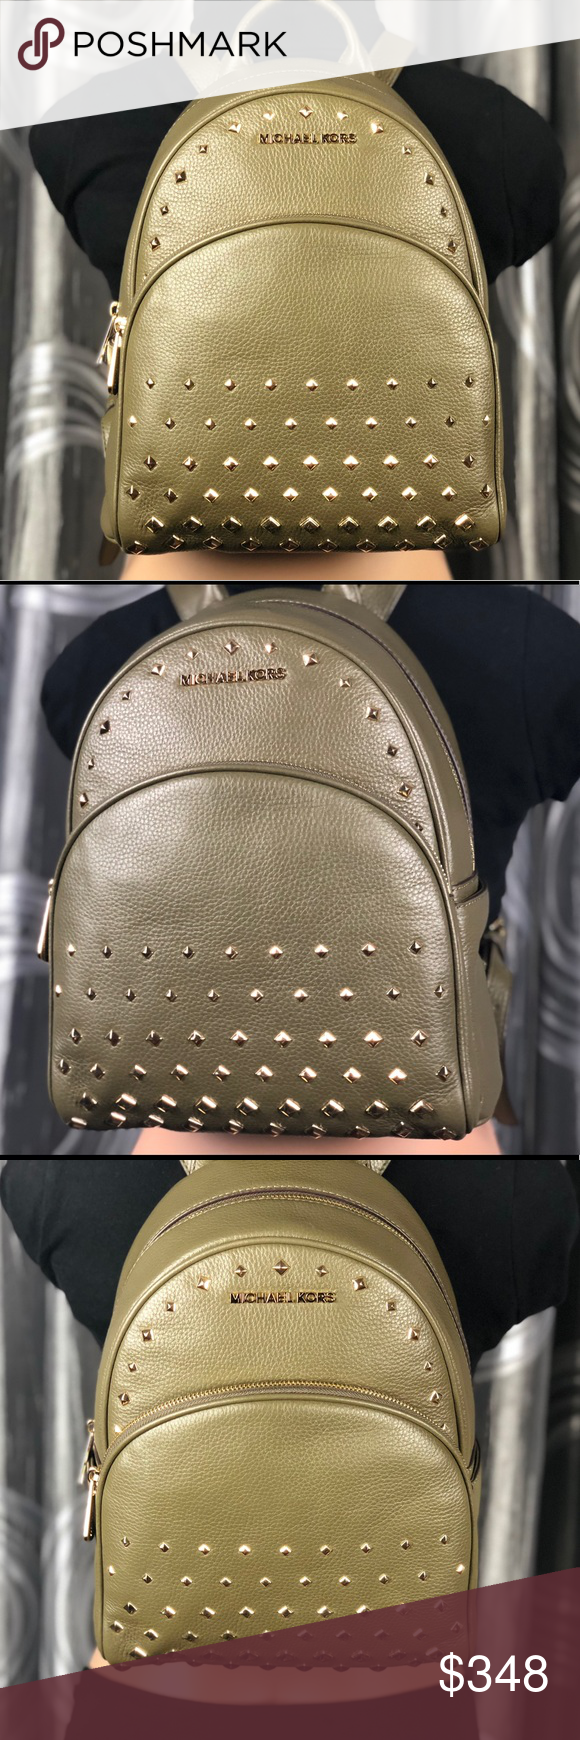 Michael Kors Abbey Studded Leather Backpack 🎒 Michael Kors Abbey Medium  Studded Olive Green Leather Backpack 19cd53d023507